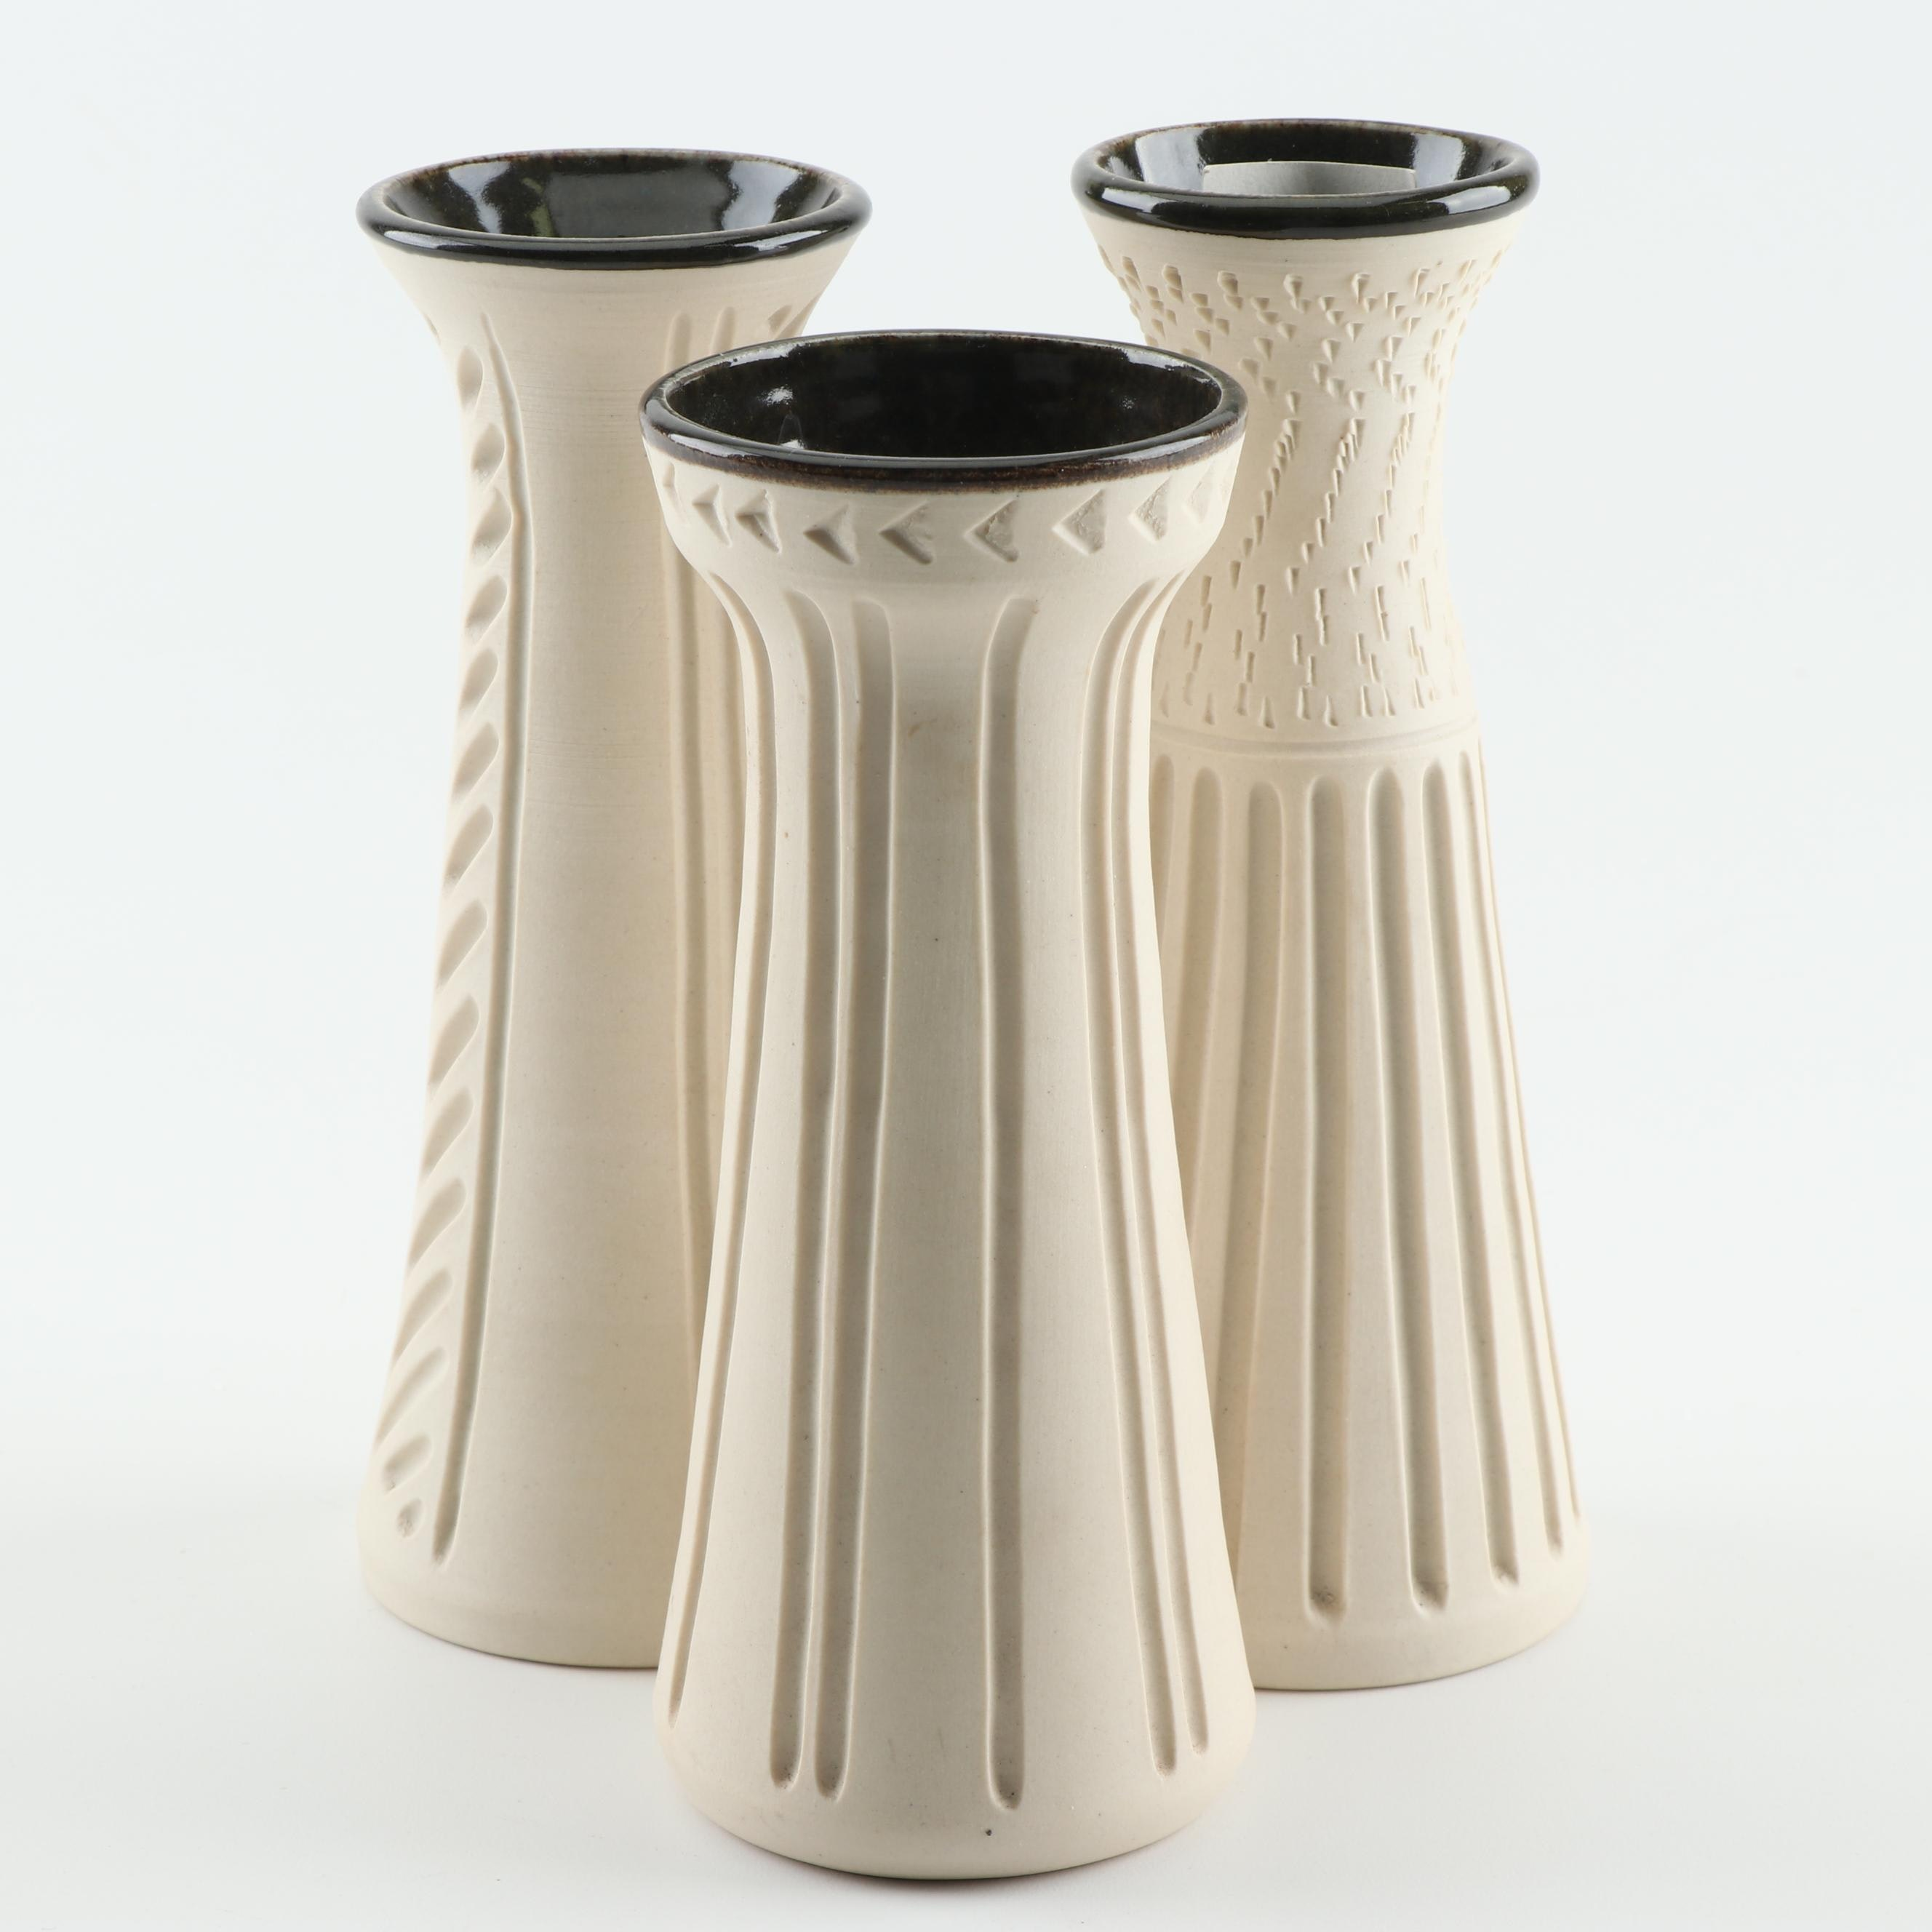 Nancy Smith Thrown and Carved Porcelain Vases